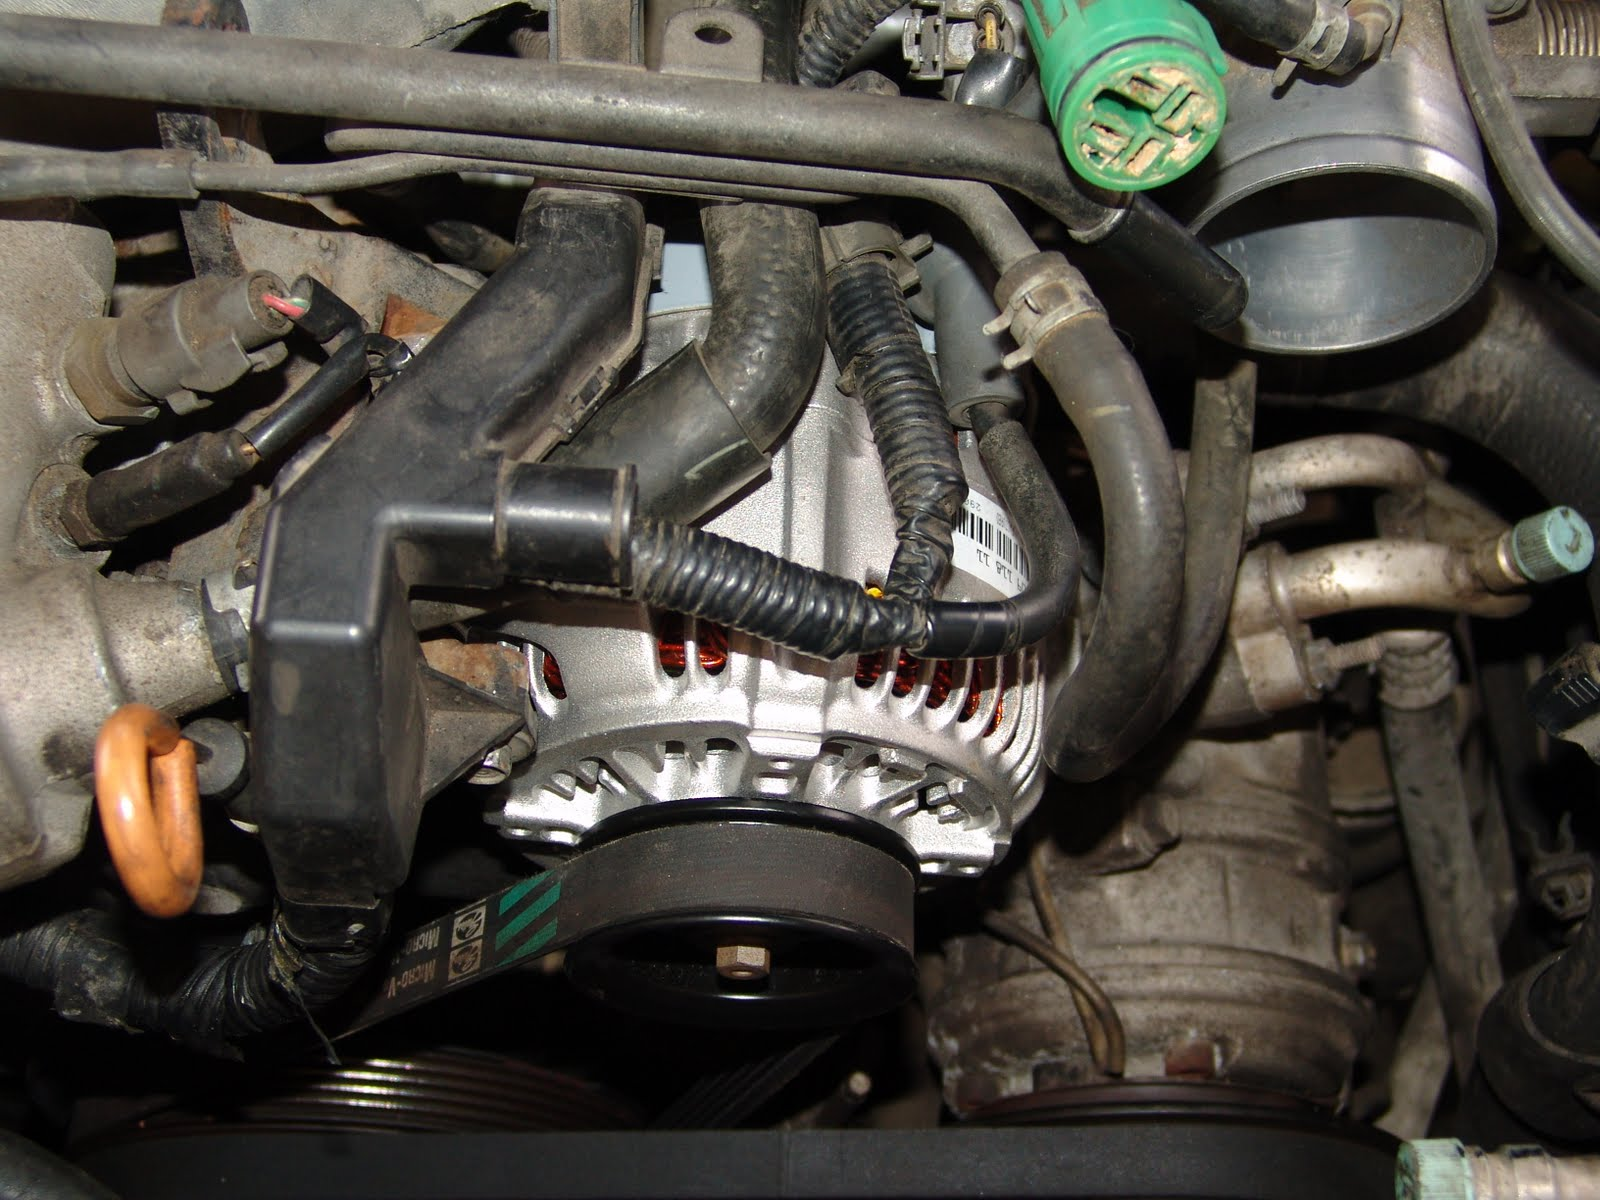 Wiring Diagram 98 Pontiac Sunfire Gt Diagrams For Dummies Fuel Filter Get Free Image About 2001 Starter Www